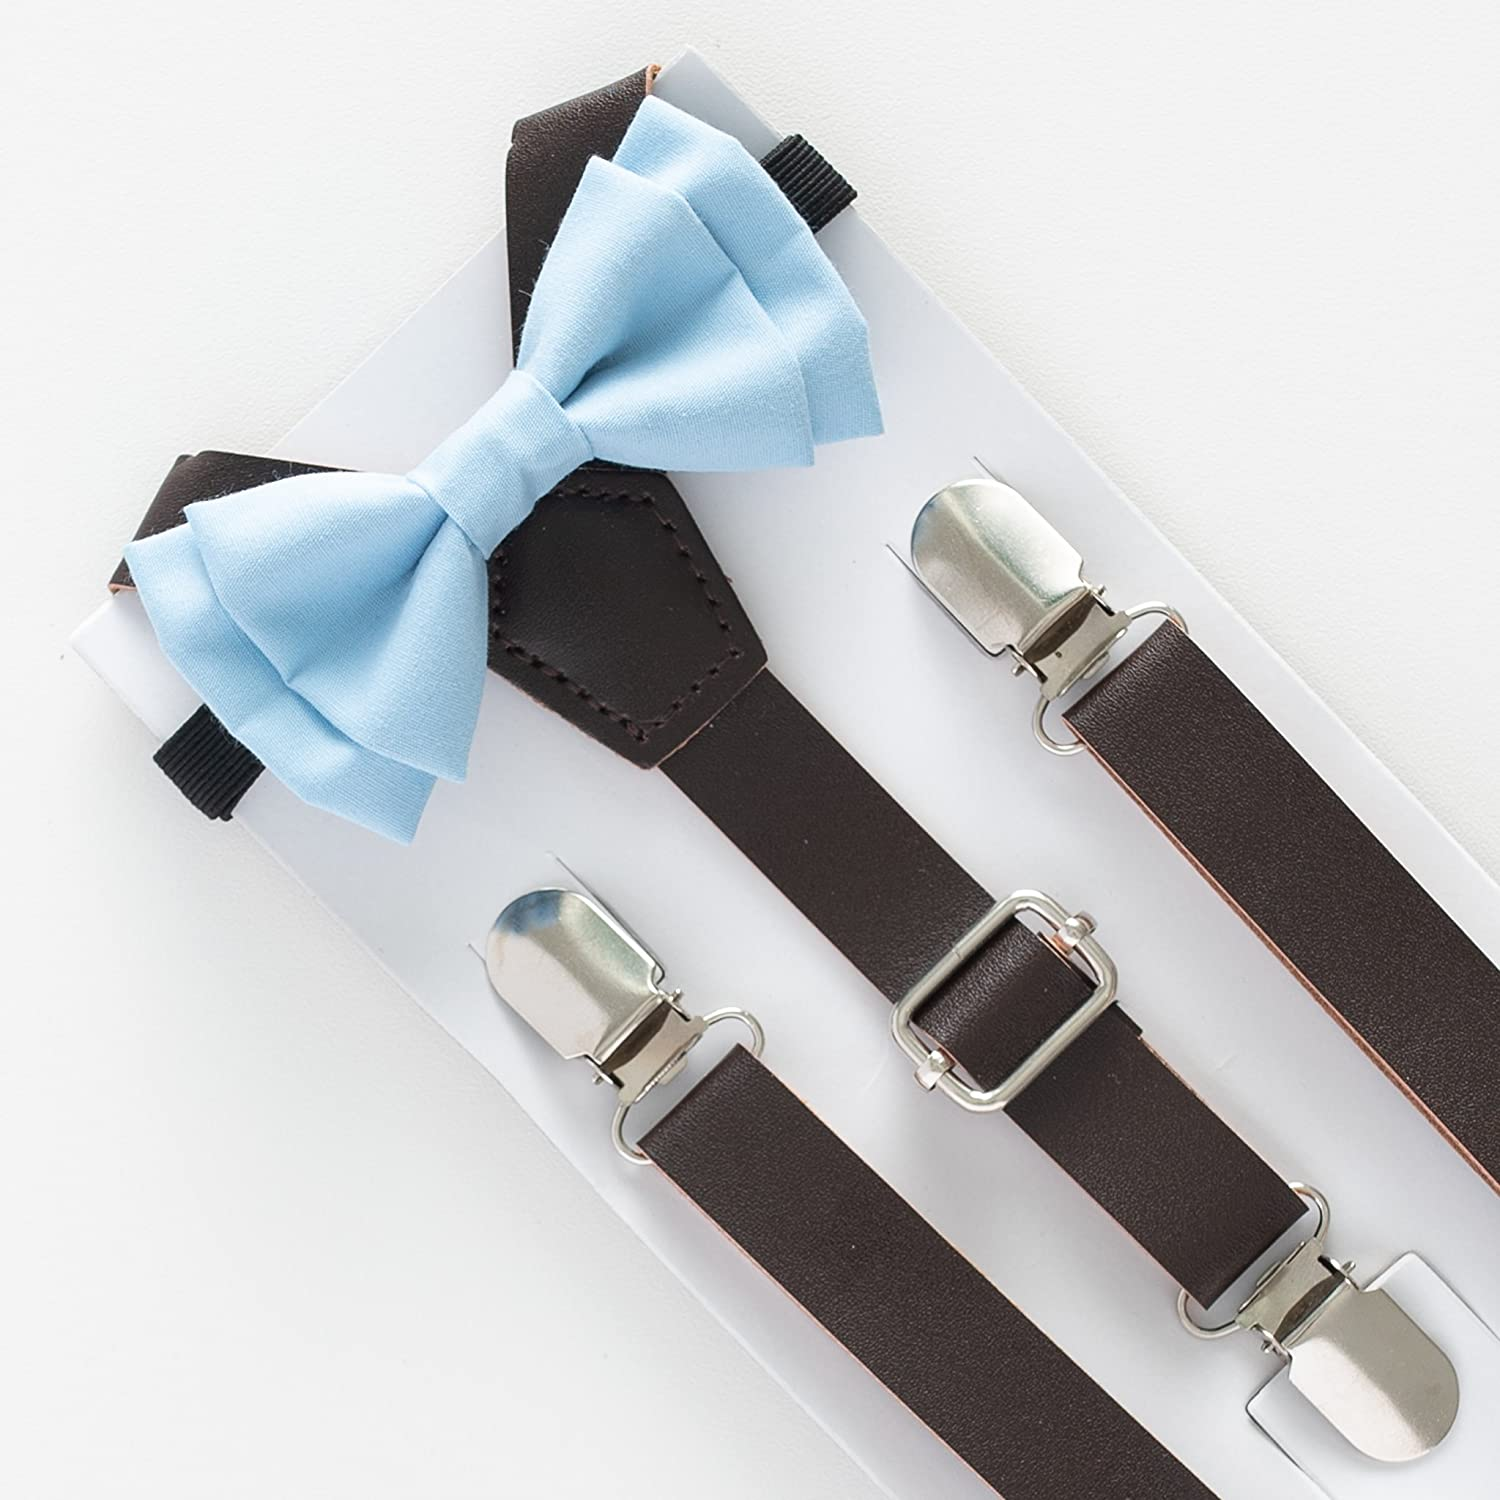 SUSPENDER & BOW TIE Set. Sweetnswag Dusty Blue Bow tie with Dark Brown Leather Suspenders. Infant - Adult. Photography prop, Weddings.